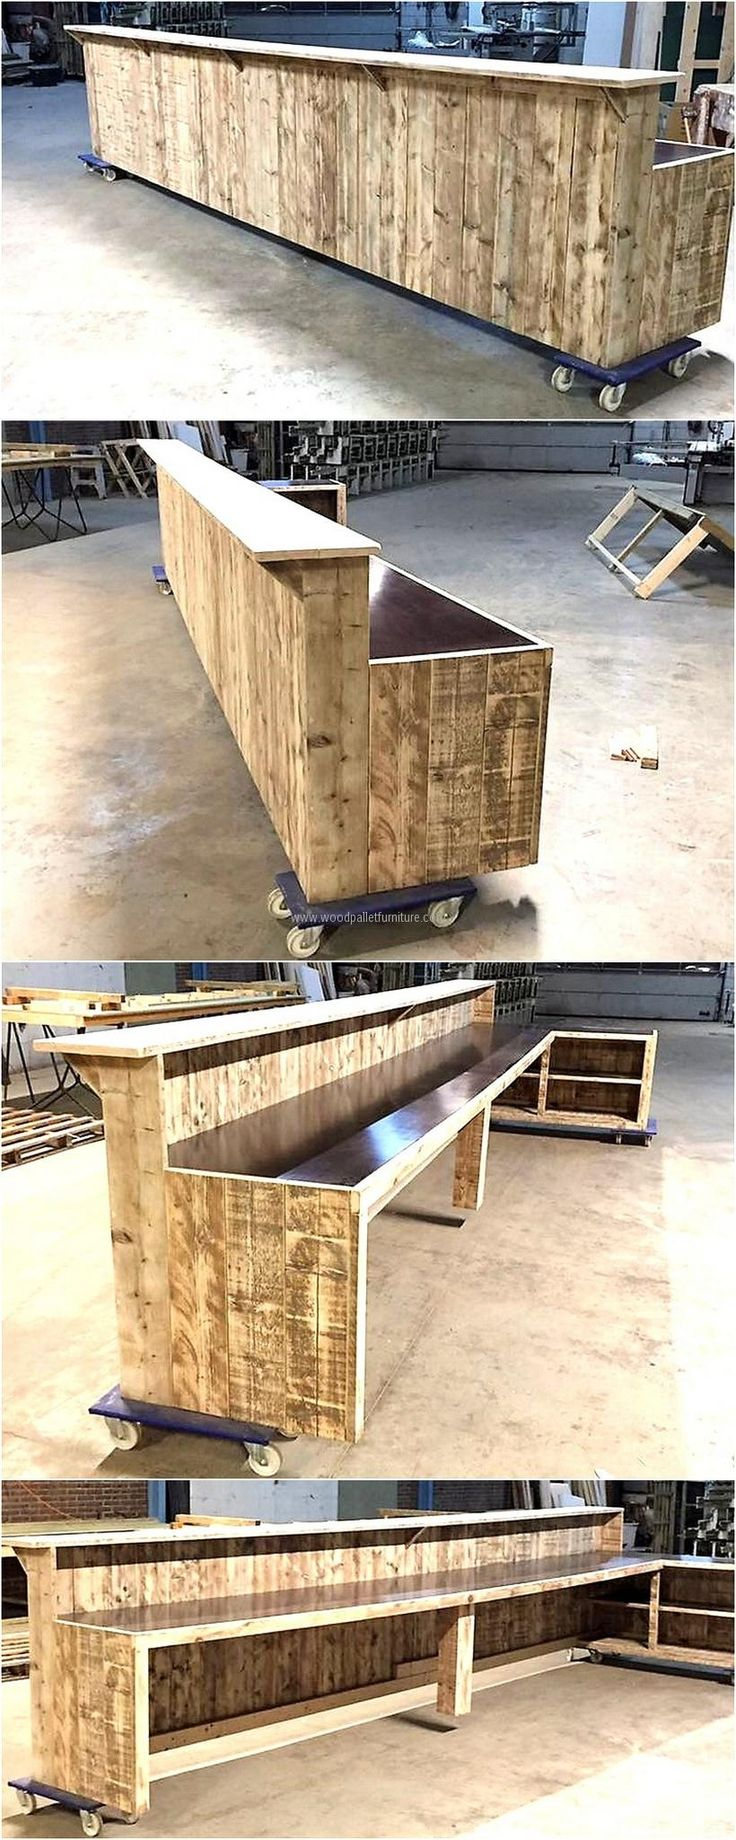 The furniture pieces on the wheels are easy to transfer anywhere as there is no need to pick them up by hand, this giant wood pallet bar idea is great for those who are planning to open a bar. The size can be decreased if the bar area is not spacious.